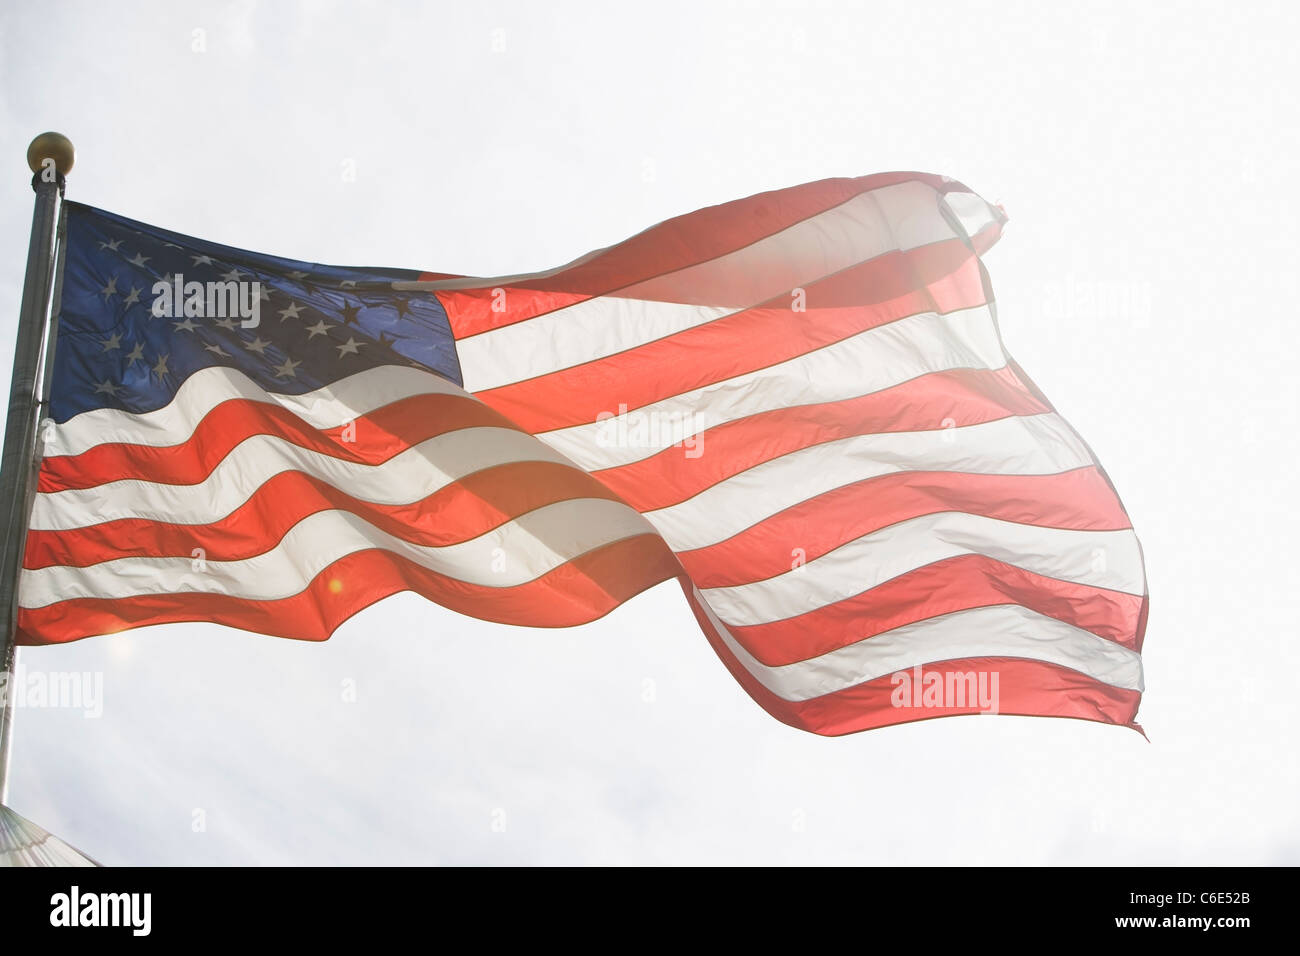 USA, New York State, New York City, American flag against sky - Stock Image